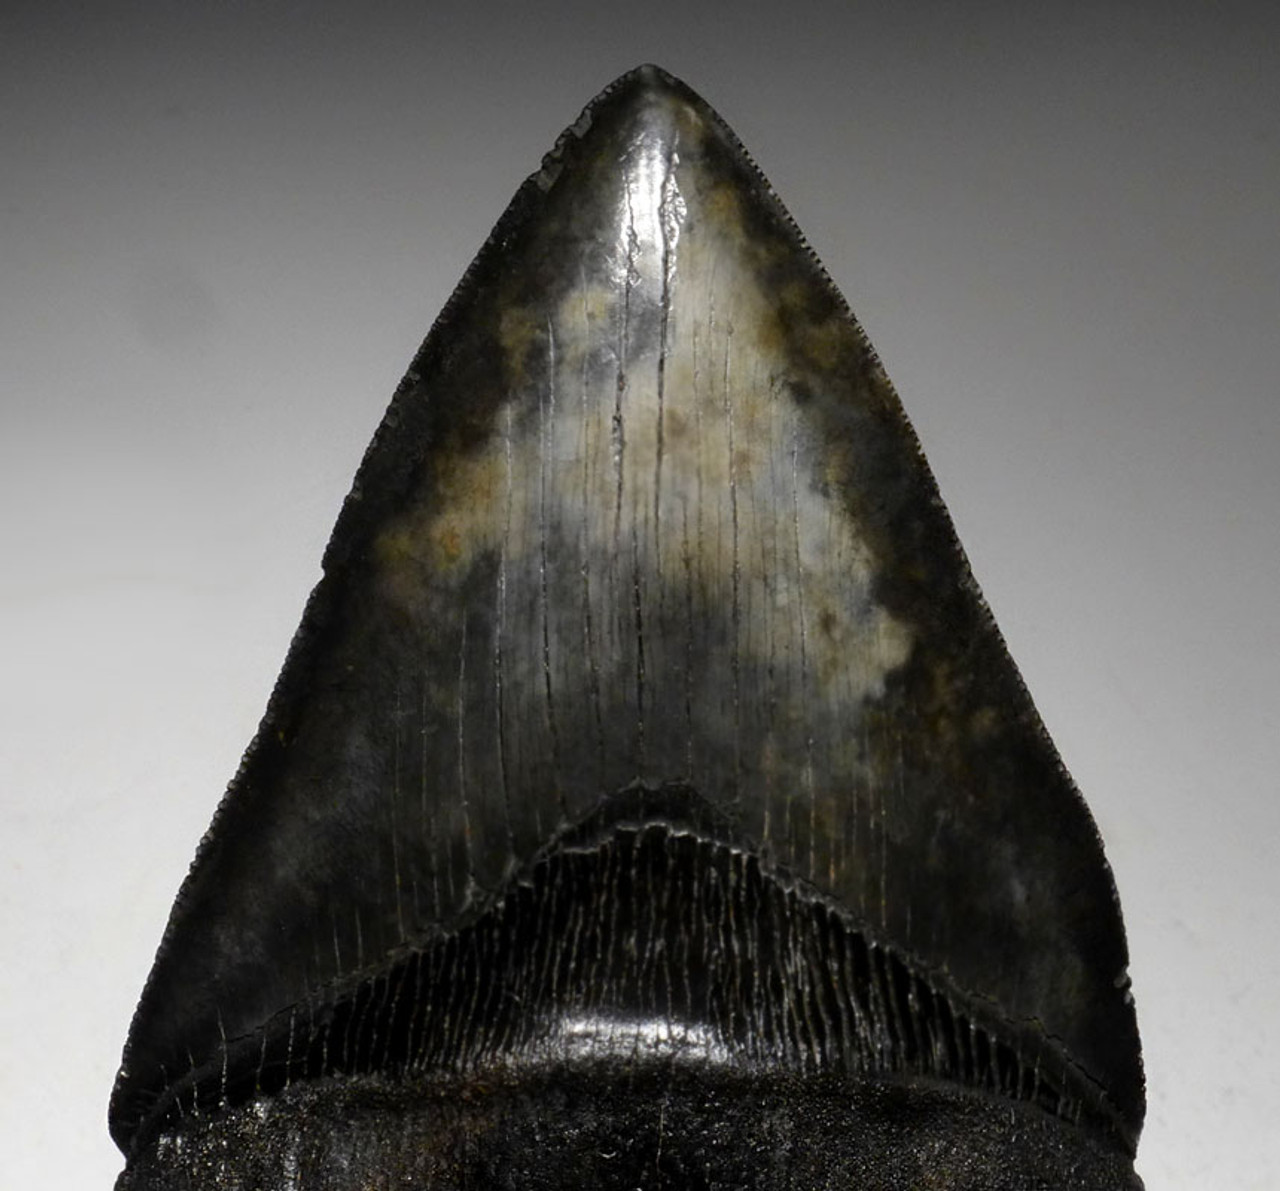 SH6-374 -  MONSTROUS UNRESTORED 6 INCH MEGALODON SHARK TOOTH WITH MIDNIGHT BLACK AND BRONZE MOTTLED ENAMEL